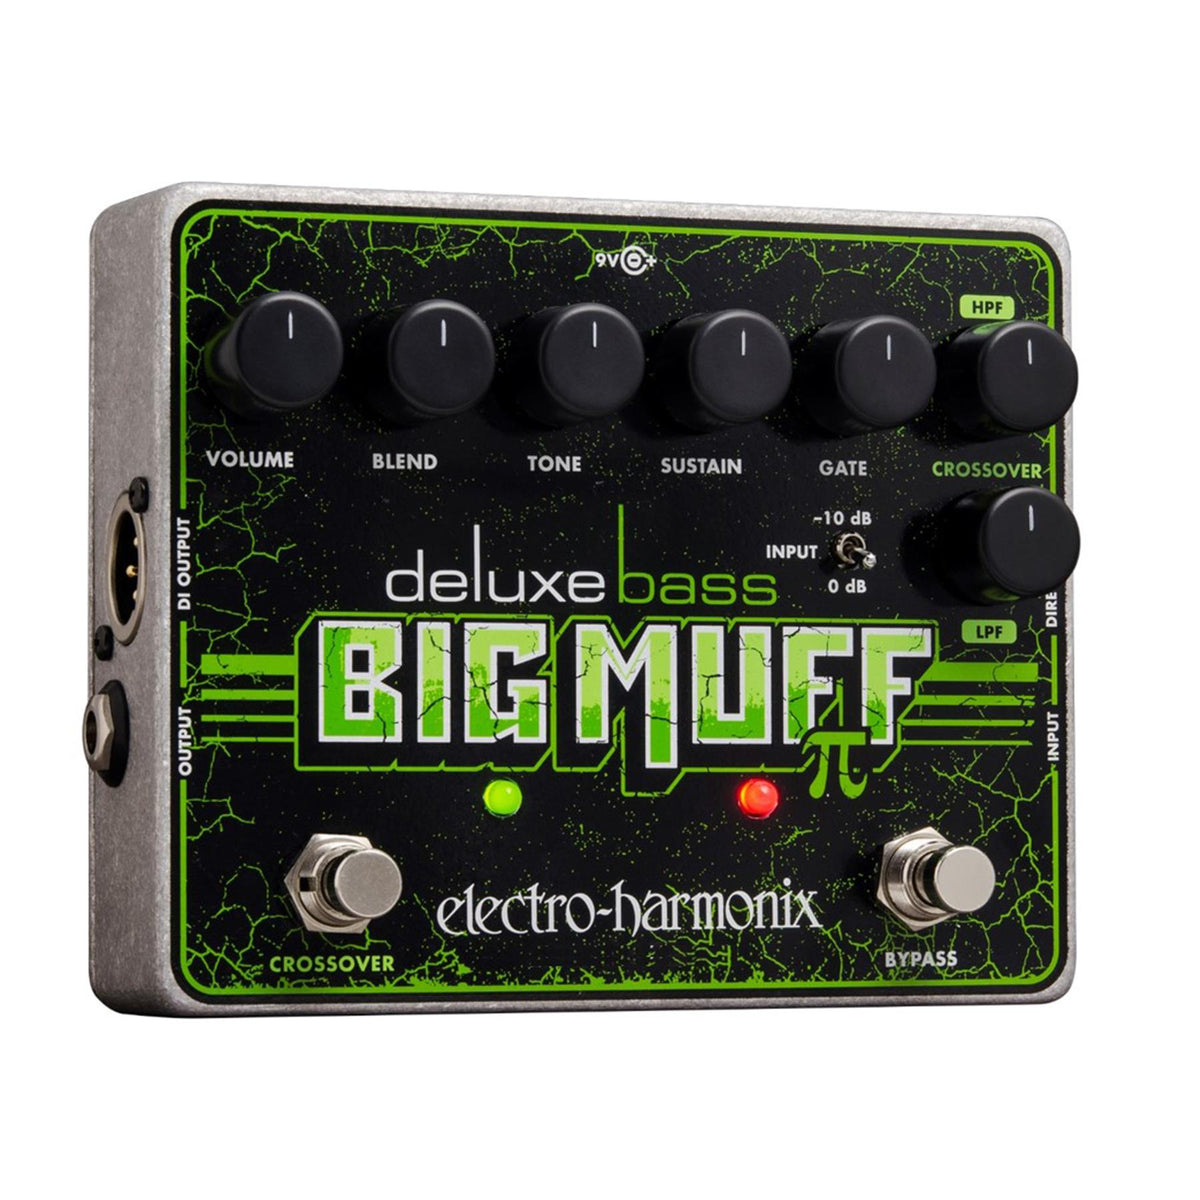 Electro-Harmonix Deluxe Bass Big Muff Pi Distortion/Sustainer Guitar Effects Pedal with Battery